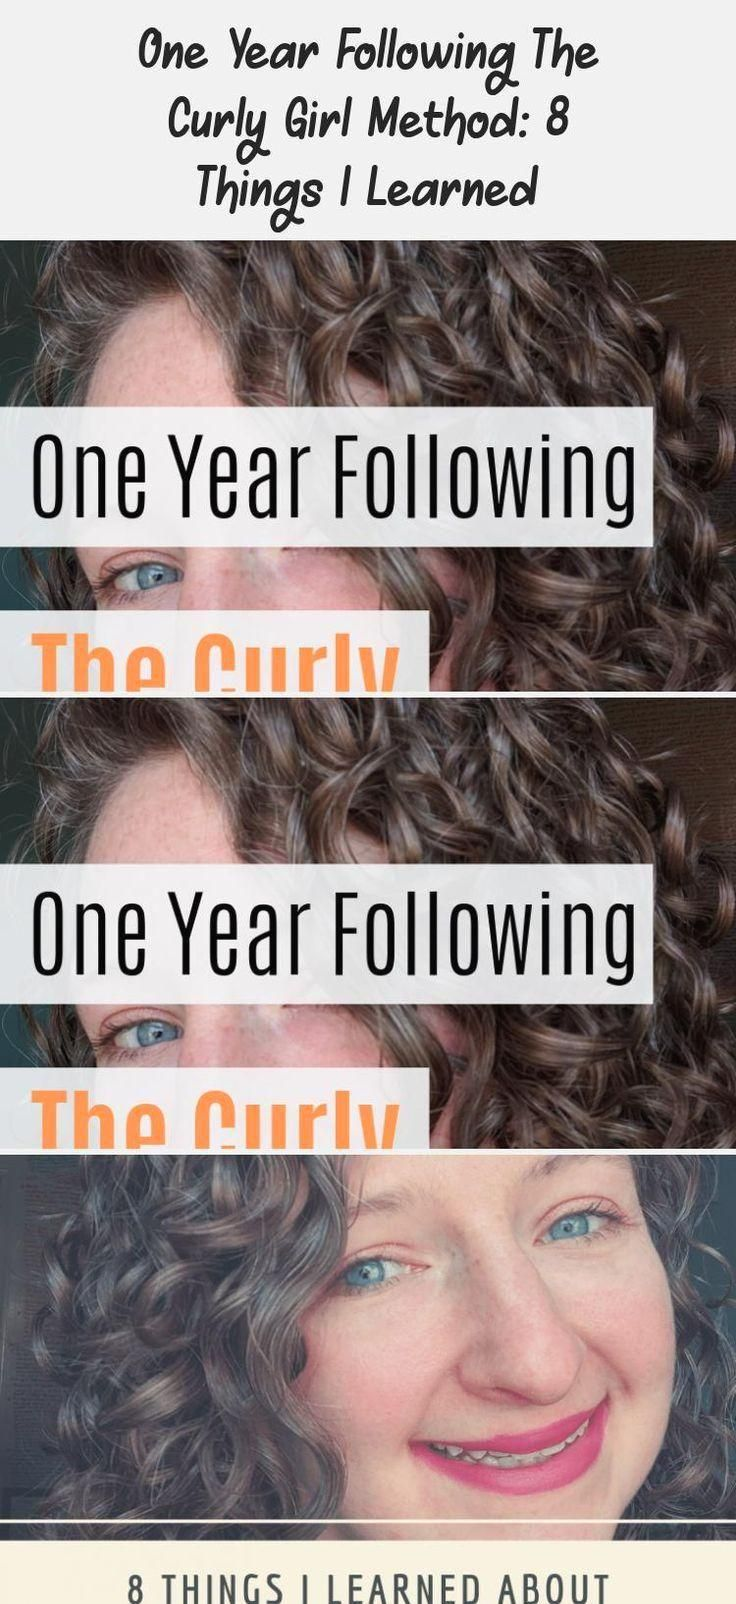 #haircareAds   #Koreanhaircare   #haircareDrugstore   #Relaxedhaircare   #Blondehaircare  #Girl  #Method  See how the Curly Girl Method helped my naturally curly hair! This post talks all about 8 things I've learned after following the Curly Girl Method for a year. If you're a Curly Girl Method beginner, take a peek and see what these curly hair tips taught me and how they can help you too!